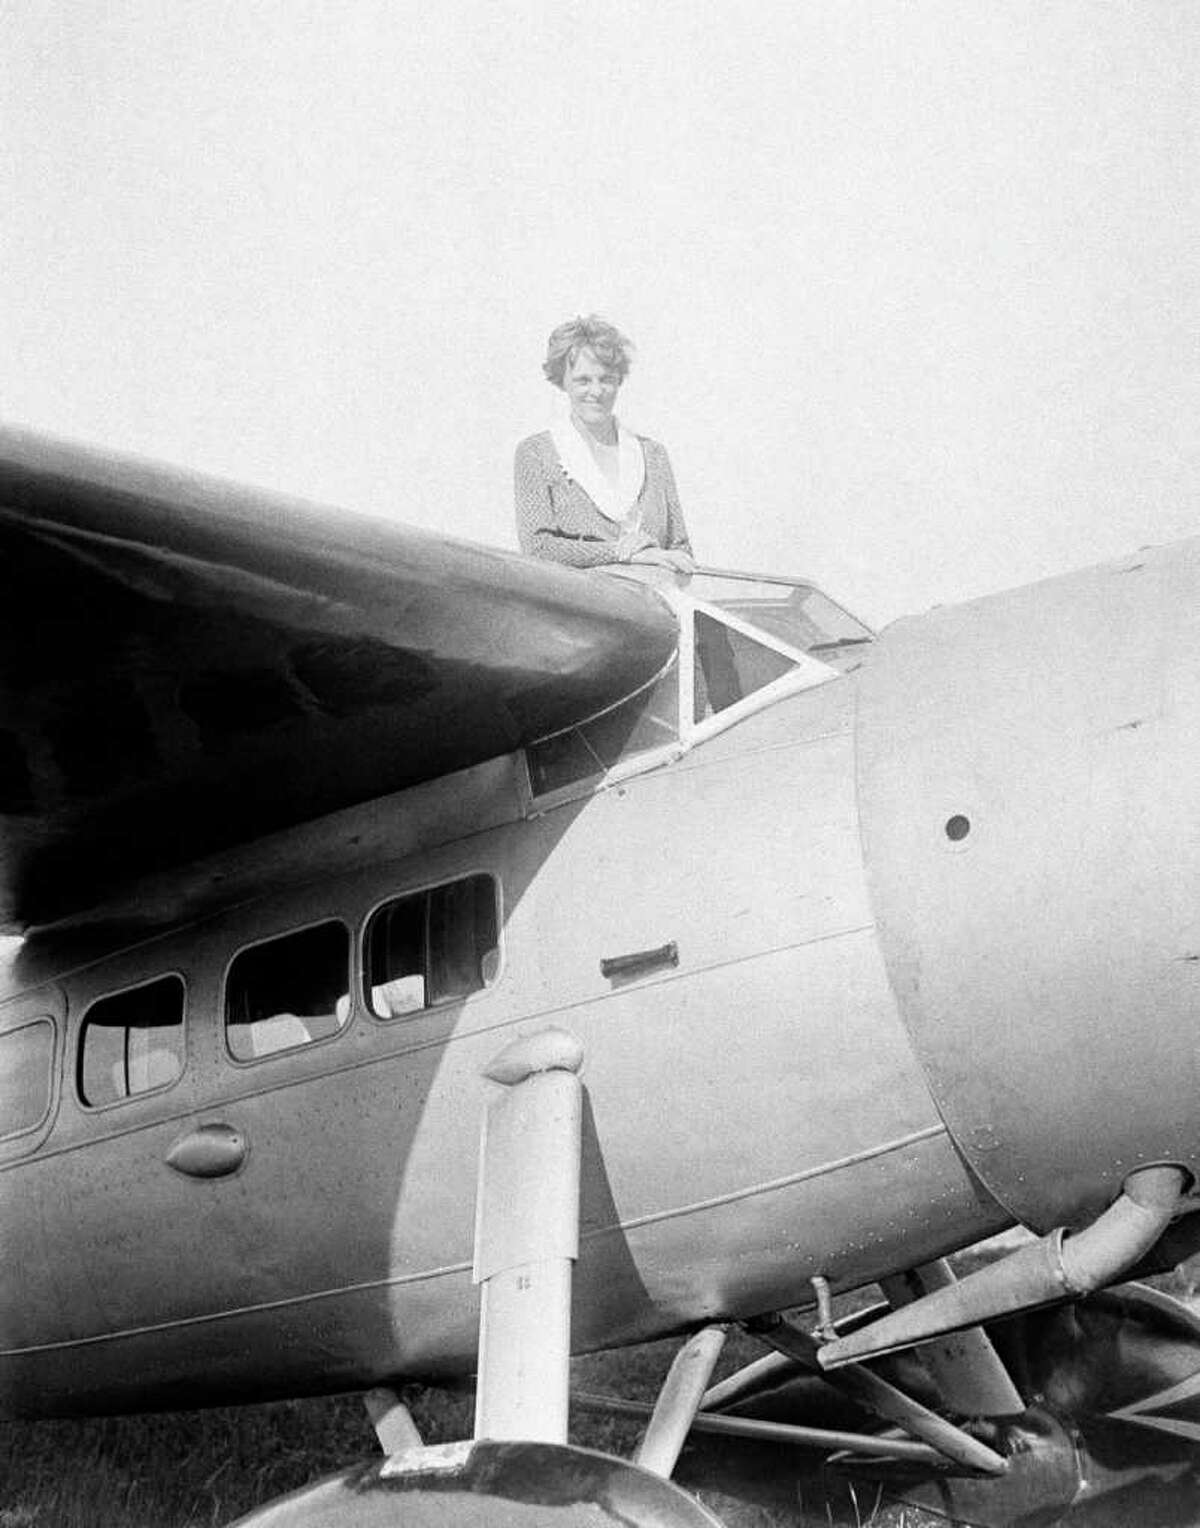 FILE - In this undated photo, Amelia Earhart, the first woman to cross the Atlantic Ocean by plane sits on top of a plane. Secretary of State Hillary Rodham Clinton is wading into one of the 20th century?'s most enduring mysteries: the fate of American aviator Amelia Earhart, disappeared over the South Pacific 75 years ago. Clinton is meeting March 20, 2012, with historians and scientists from The International Group for Historic Aircraft Recovery, which will launch a new search in June for the wreckage of Earhart?'s plane off the remote island of Nikumaroro. (AP Photo)